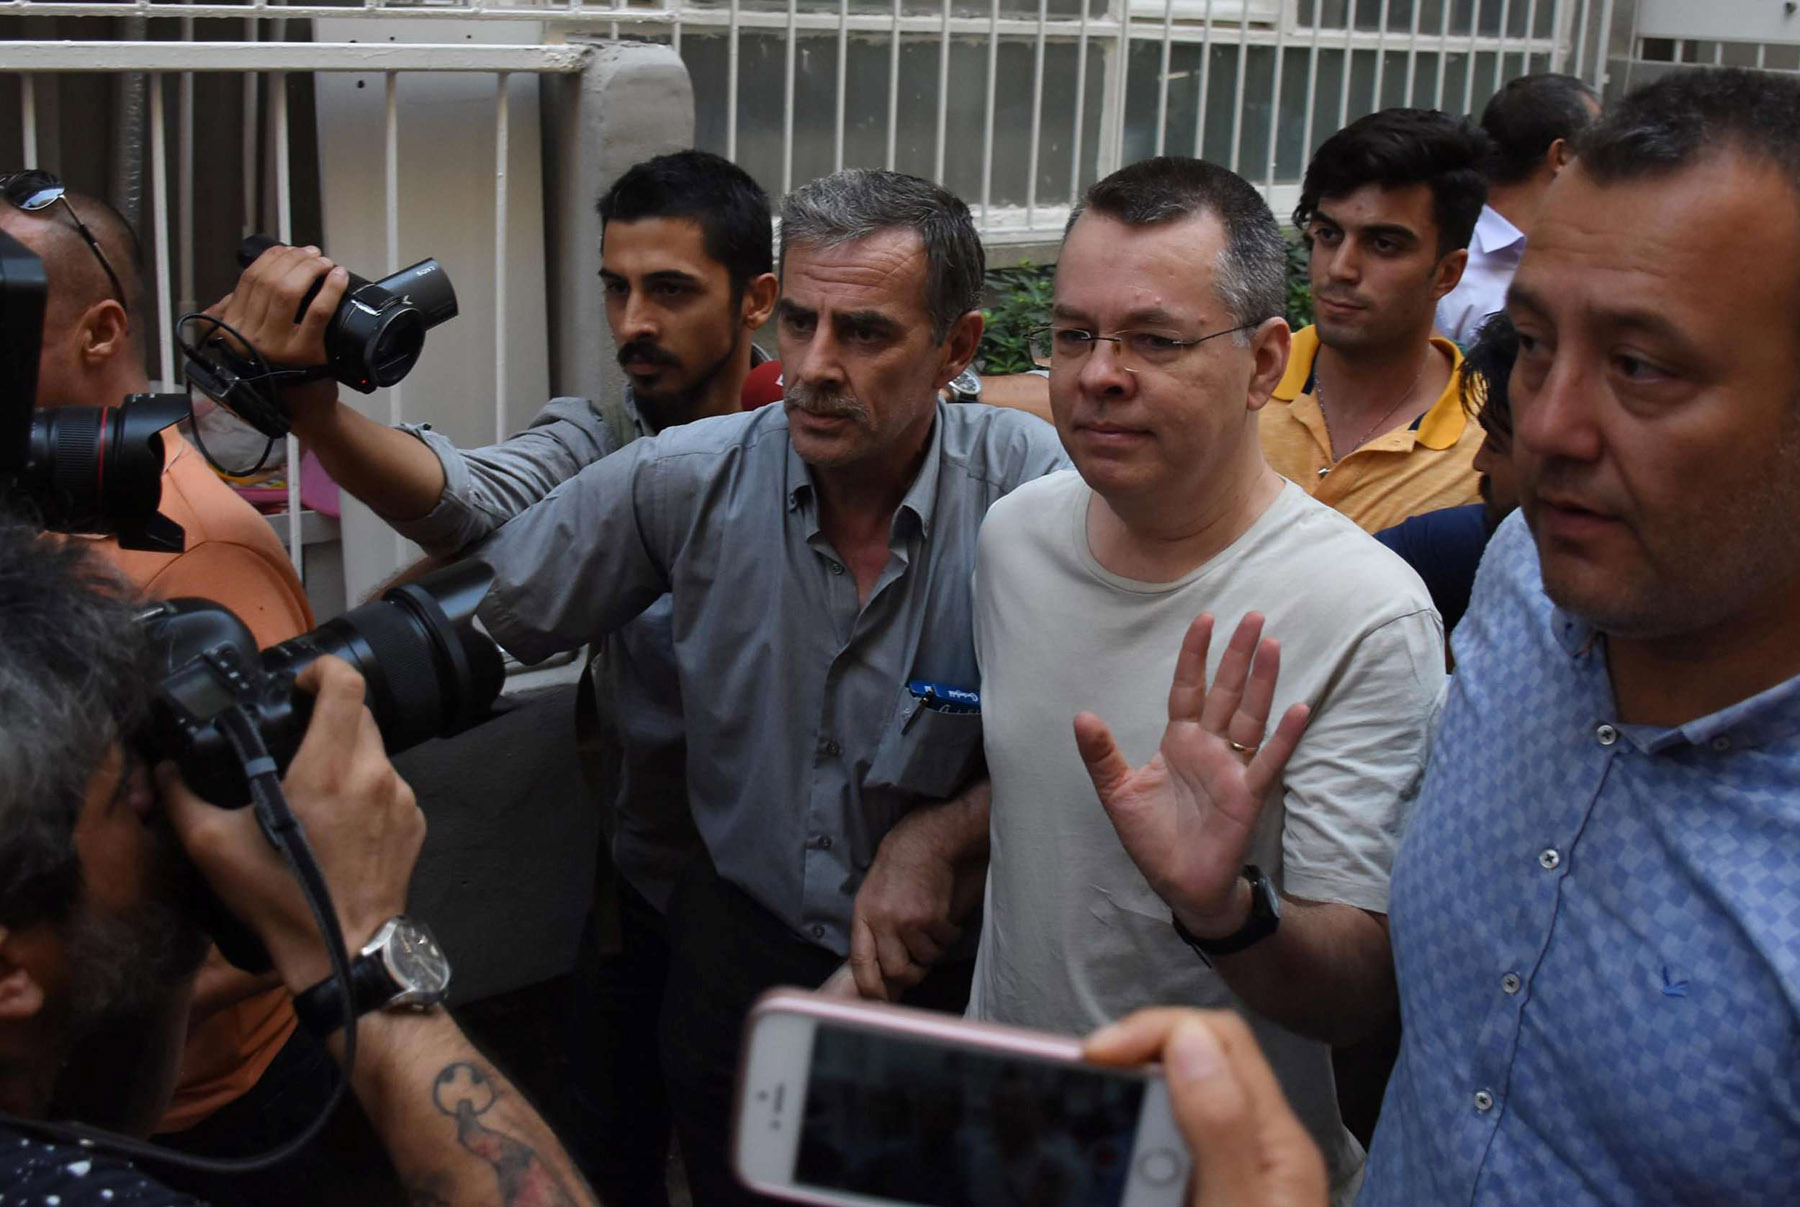 US pastor Andrew Brunson (C-R) arrives at his home after being released from prison in Izmir, last July. (Reuters)